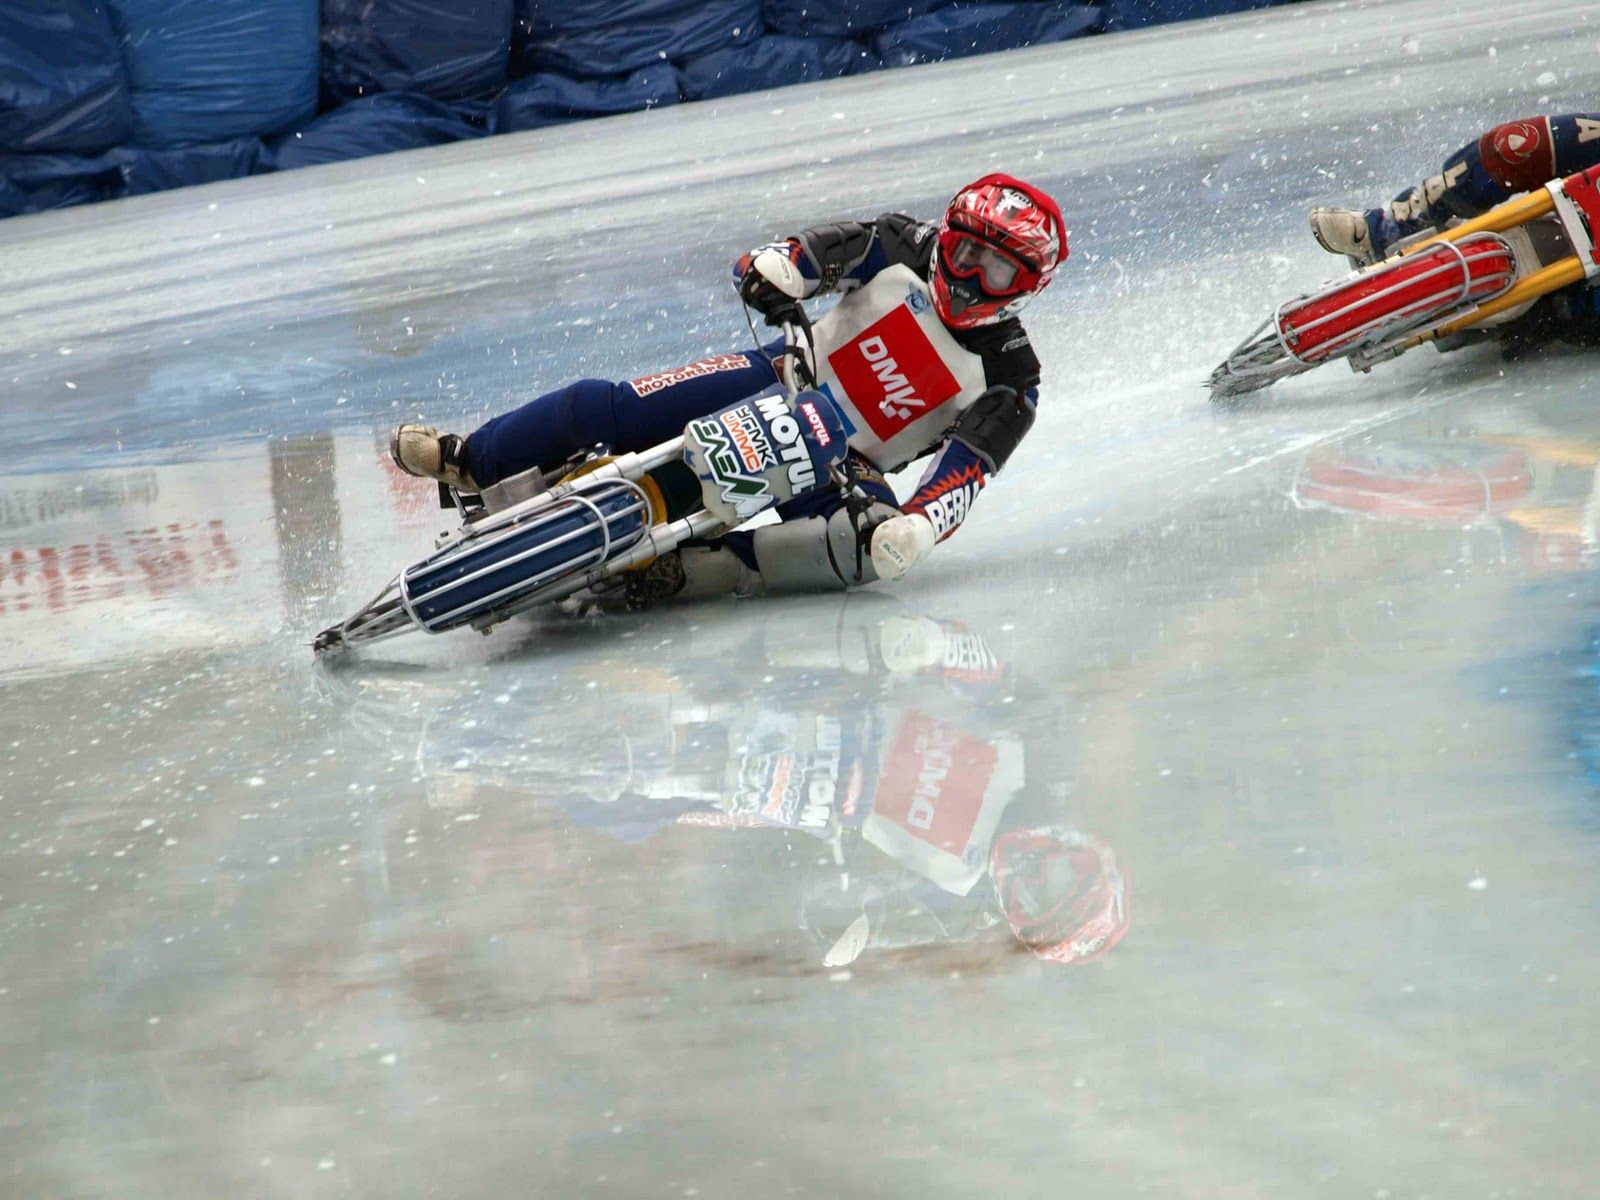 Ice racing this is the bike that would work this week in eugene oregon